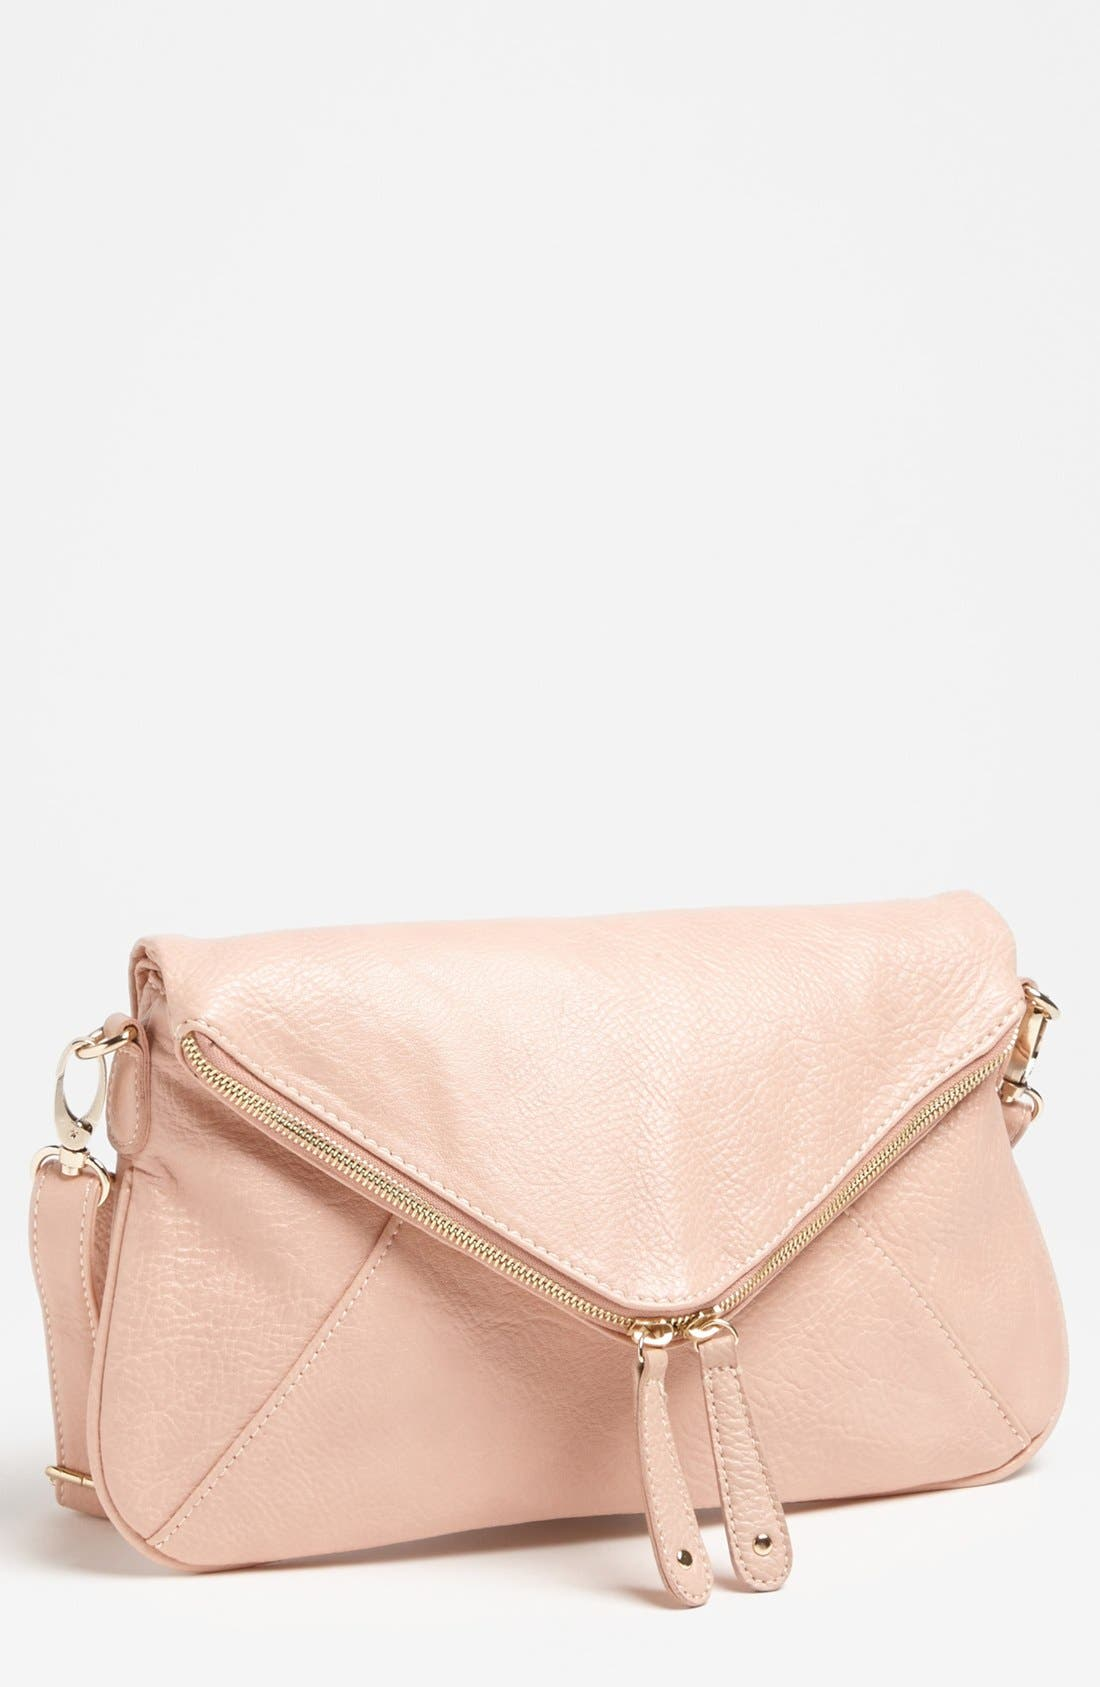 Main Image - Street Level Double Zip Faux Leather Crossbody Bag